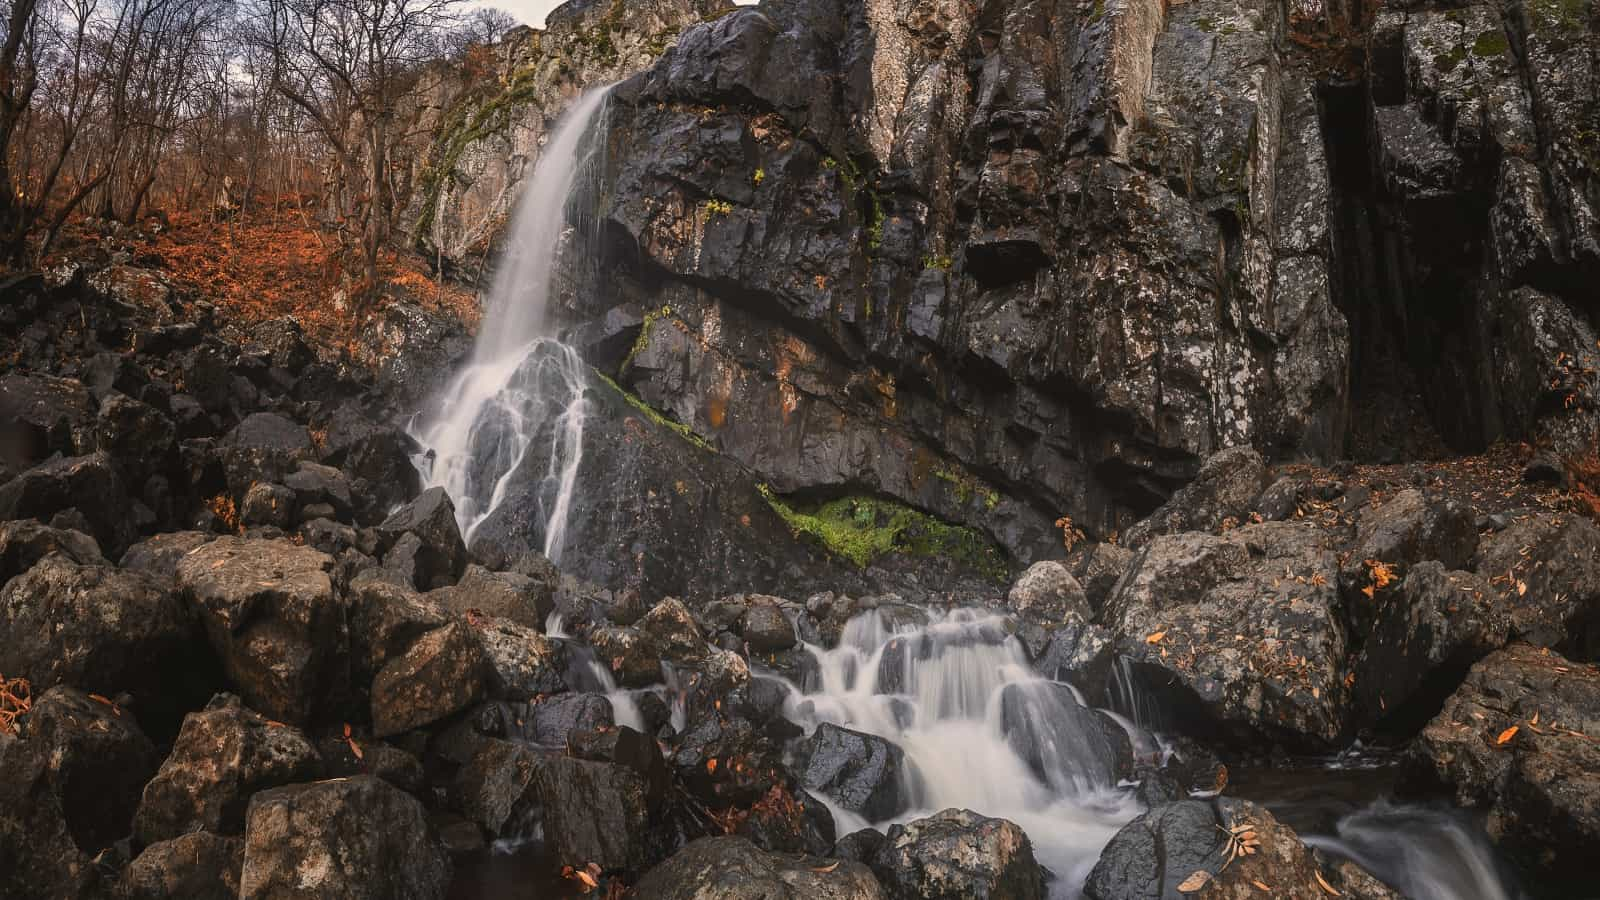 Boyana waterfall Photo by Veliko Karachiviev on Unsplash.com